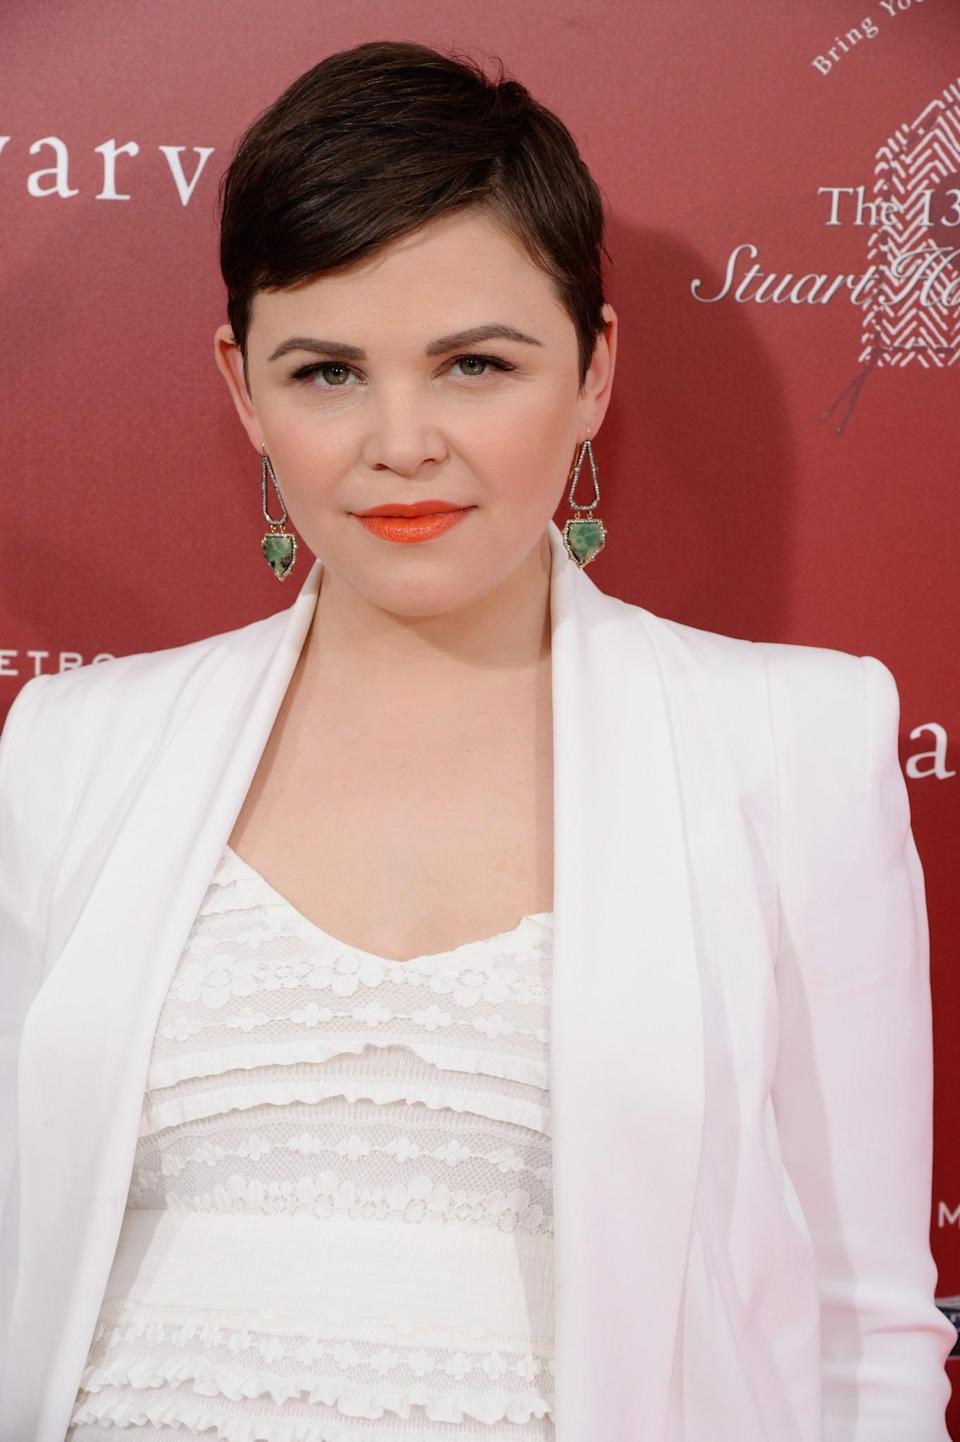 <p>Ginnifer Goodwin's trademark short hair has made us all want to shed our long locks at one time or another. [Photo: Getty] </p>